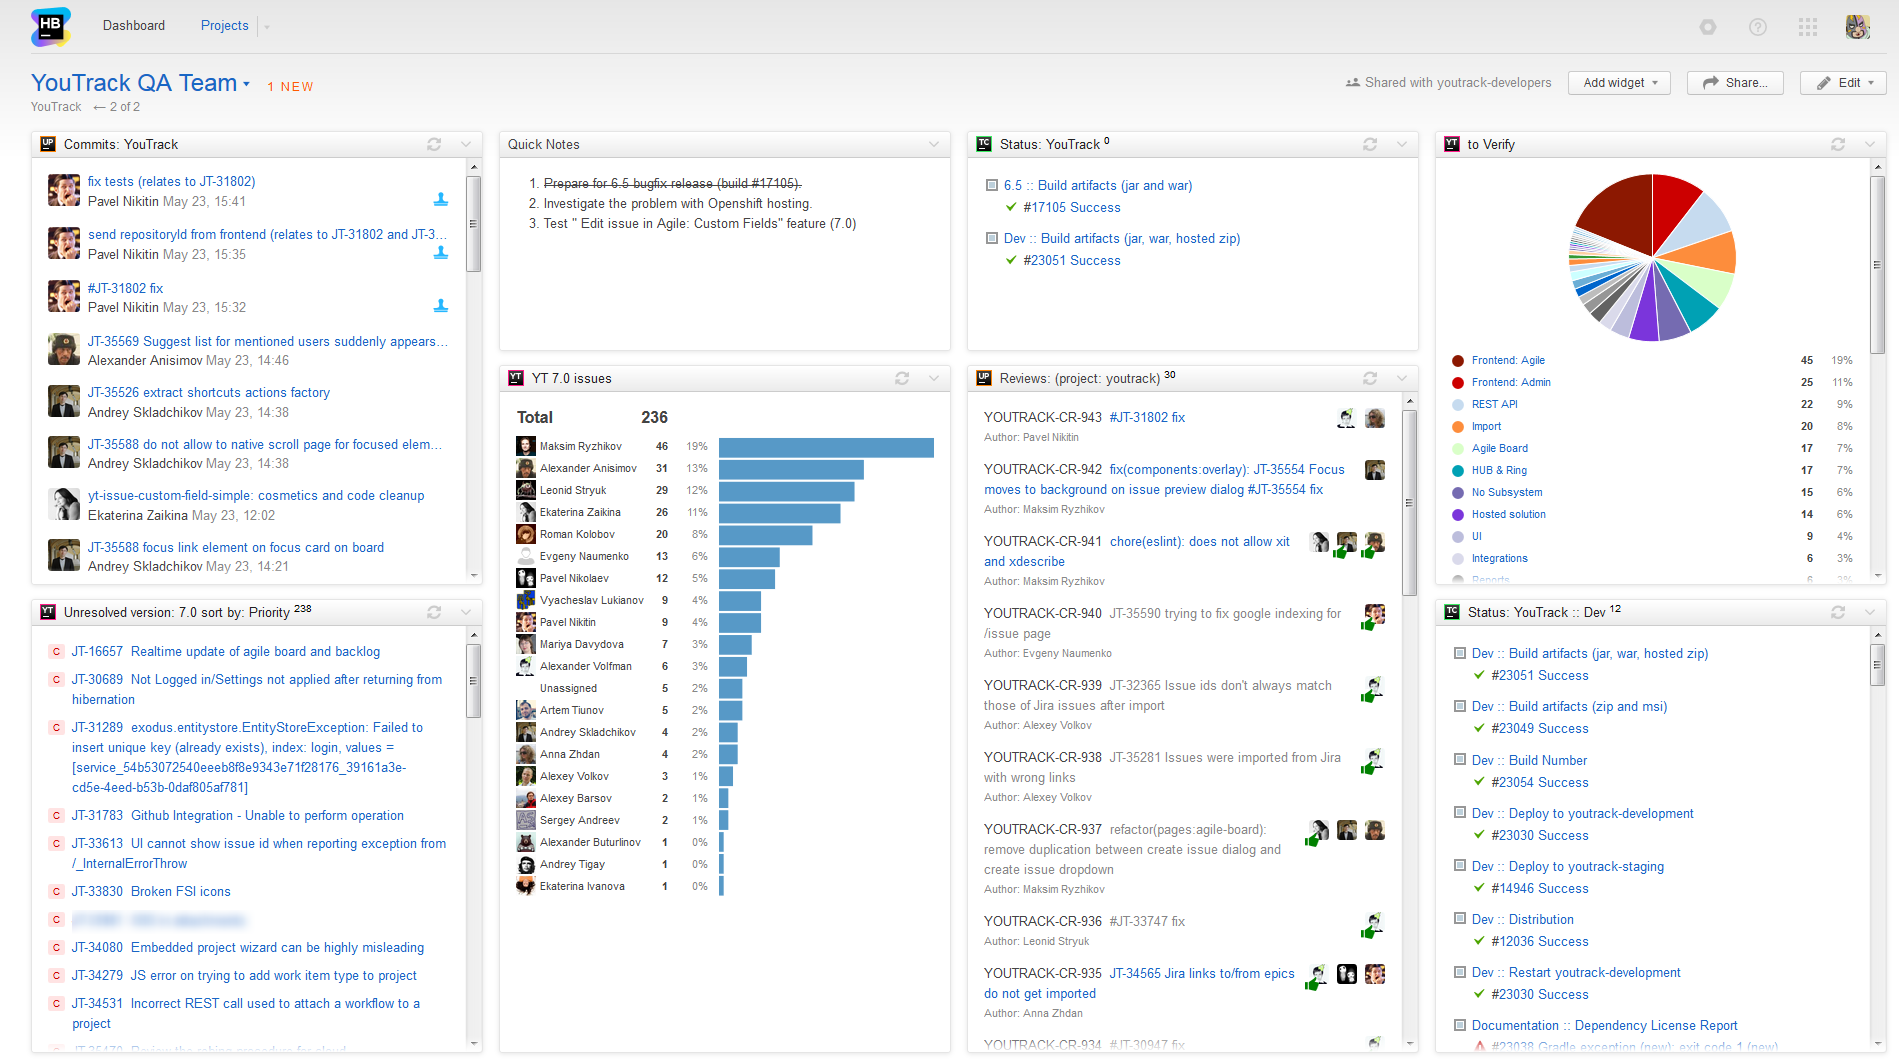 QA Team dashboard